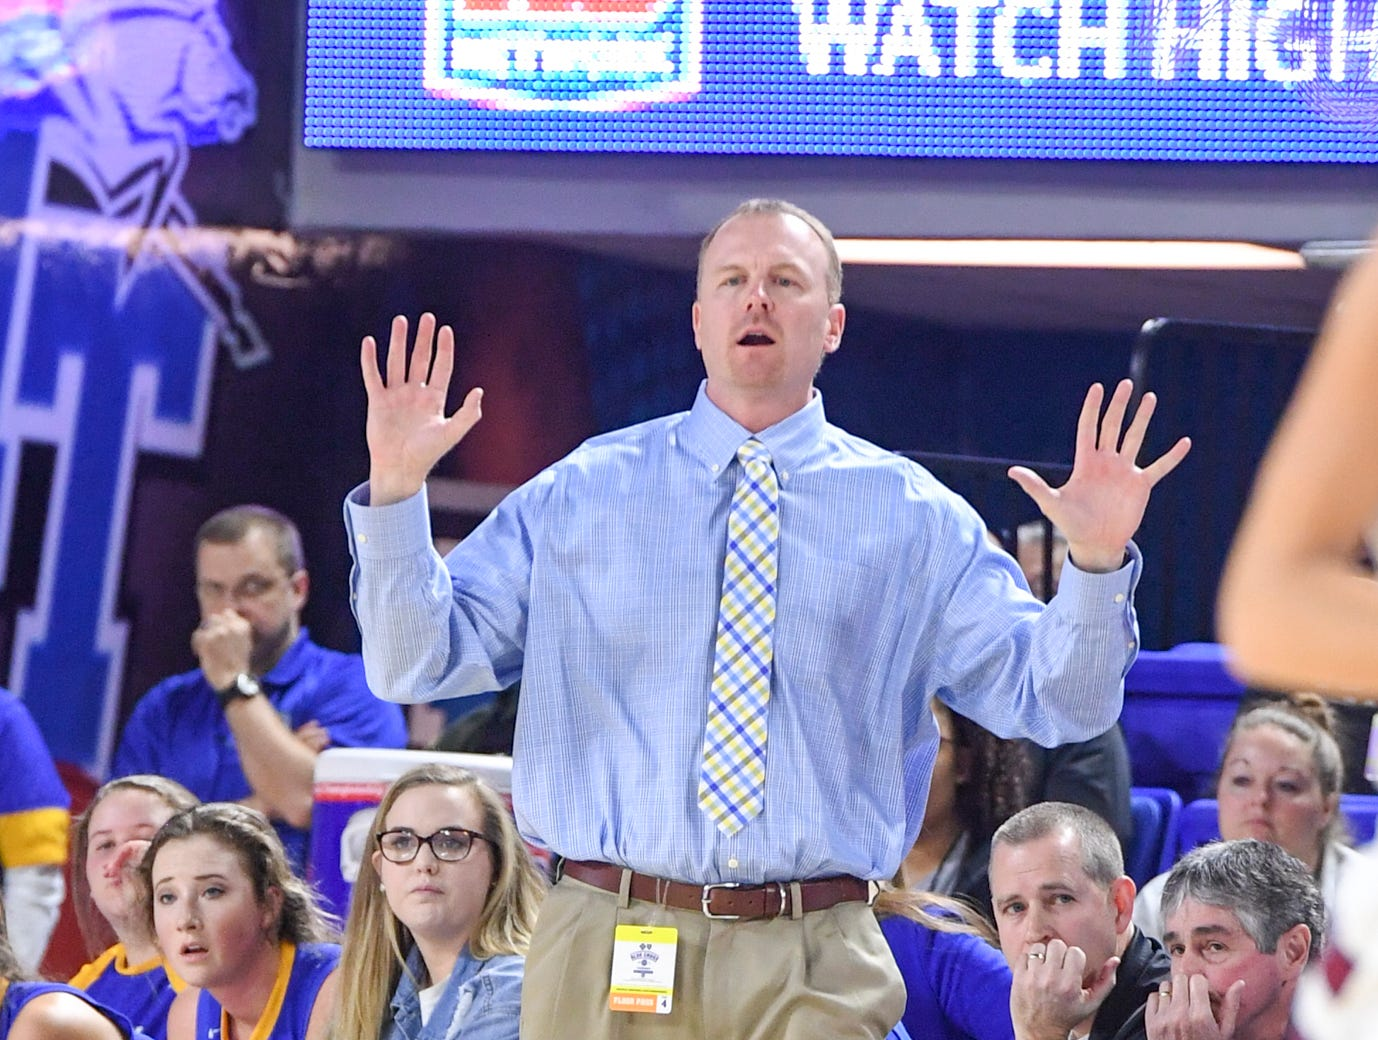 Westview's head coach Brian Haskins calls out a play to his team during their Class AA championship game against Cheatham County, Saturday, March 9, 2019, in Murfreesboro.